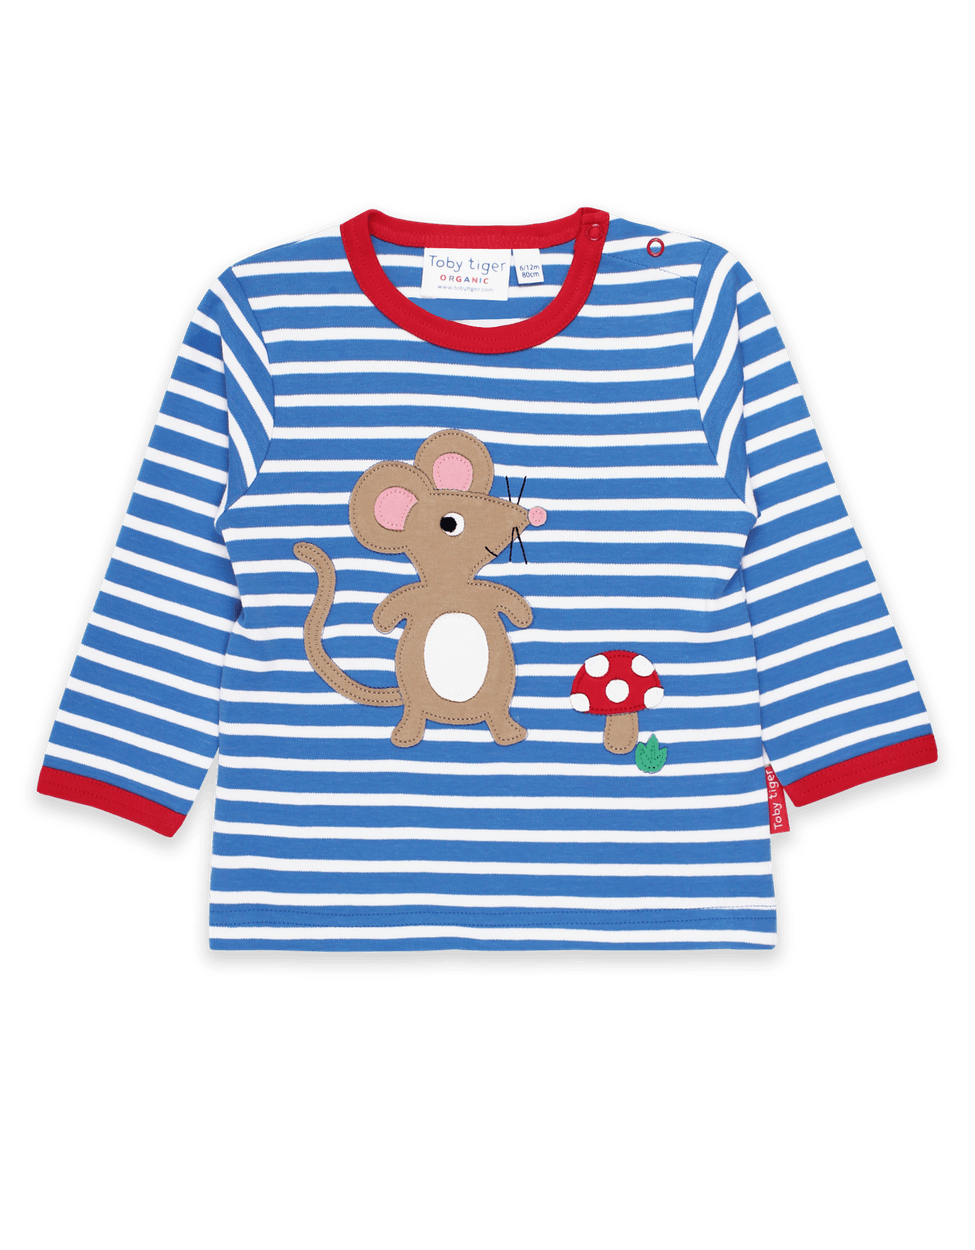 Toby Tiger Organic Mouse And Mushroom Applique Long SleeveT-Shirt Blue - The Thrifty Stork